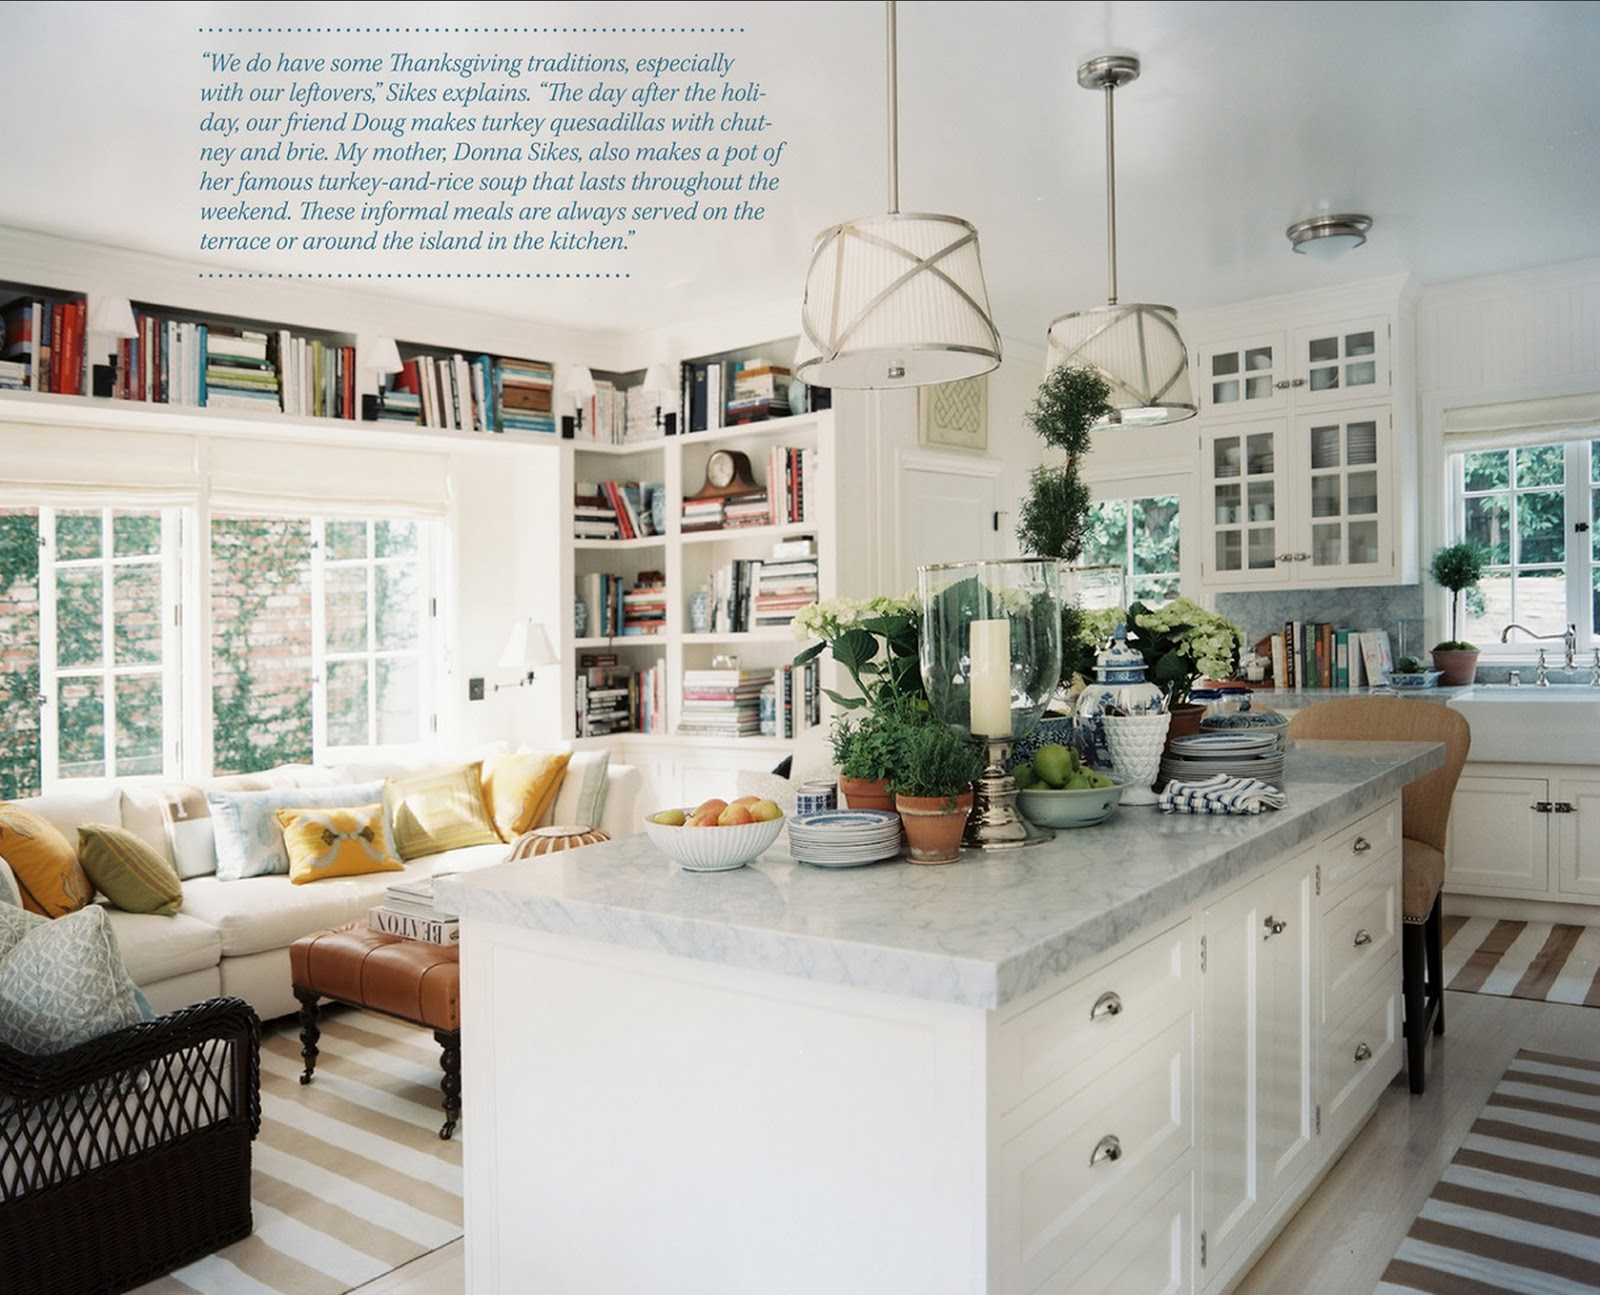 design kitchens on decorology: Interior designer Mark Sikes' Southern California Home ...